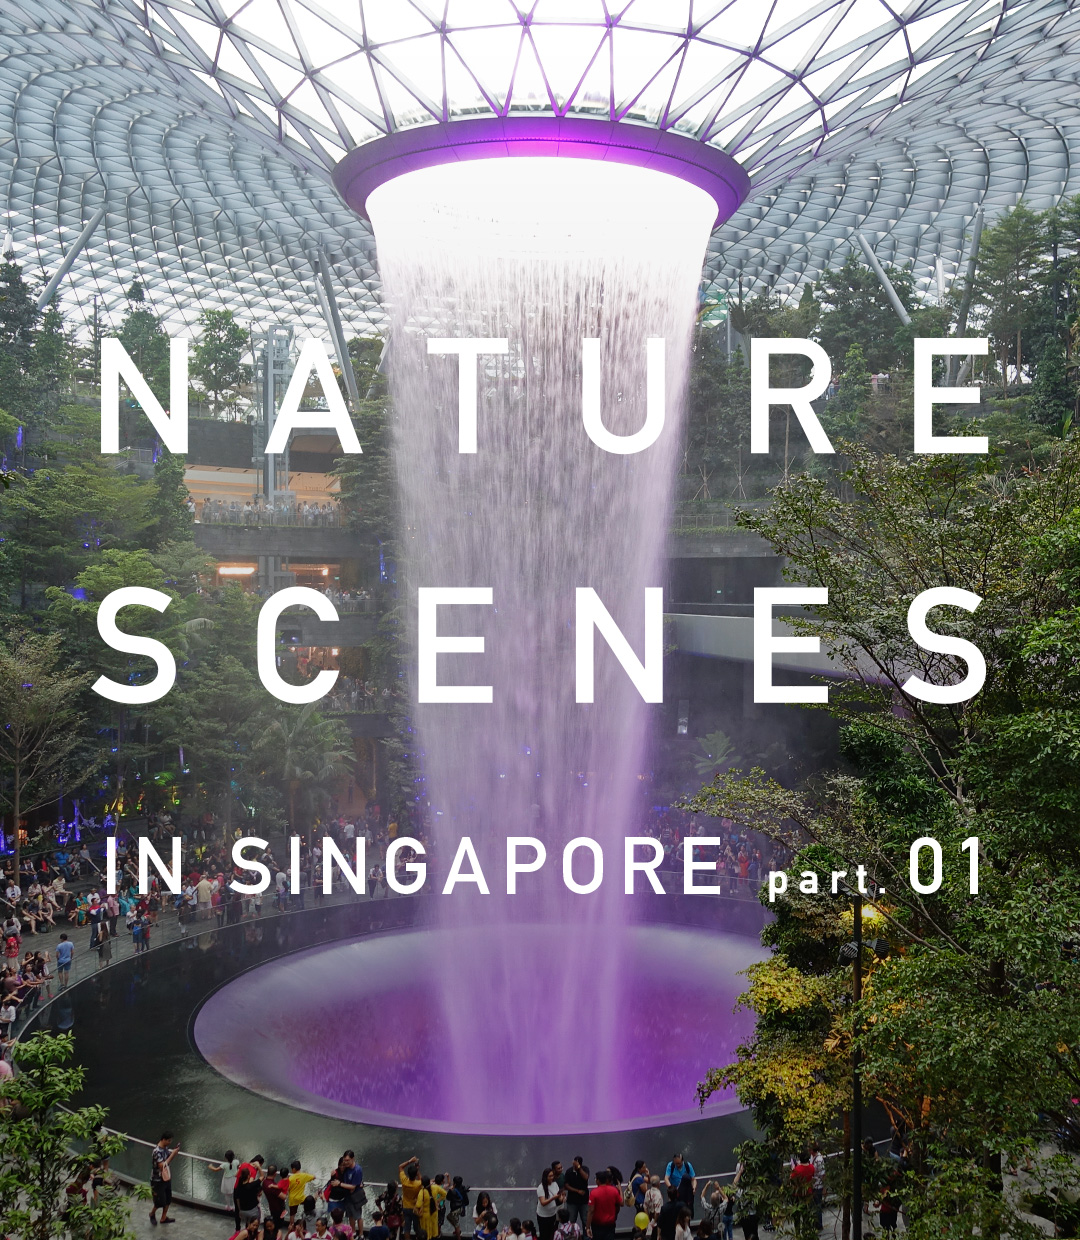 Aquatic plant affairs in the world's greenest city, Singapore – Shops –